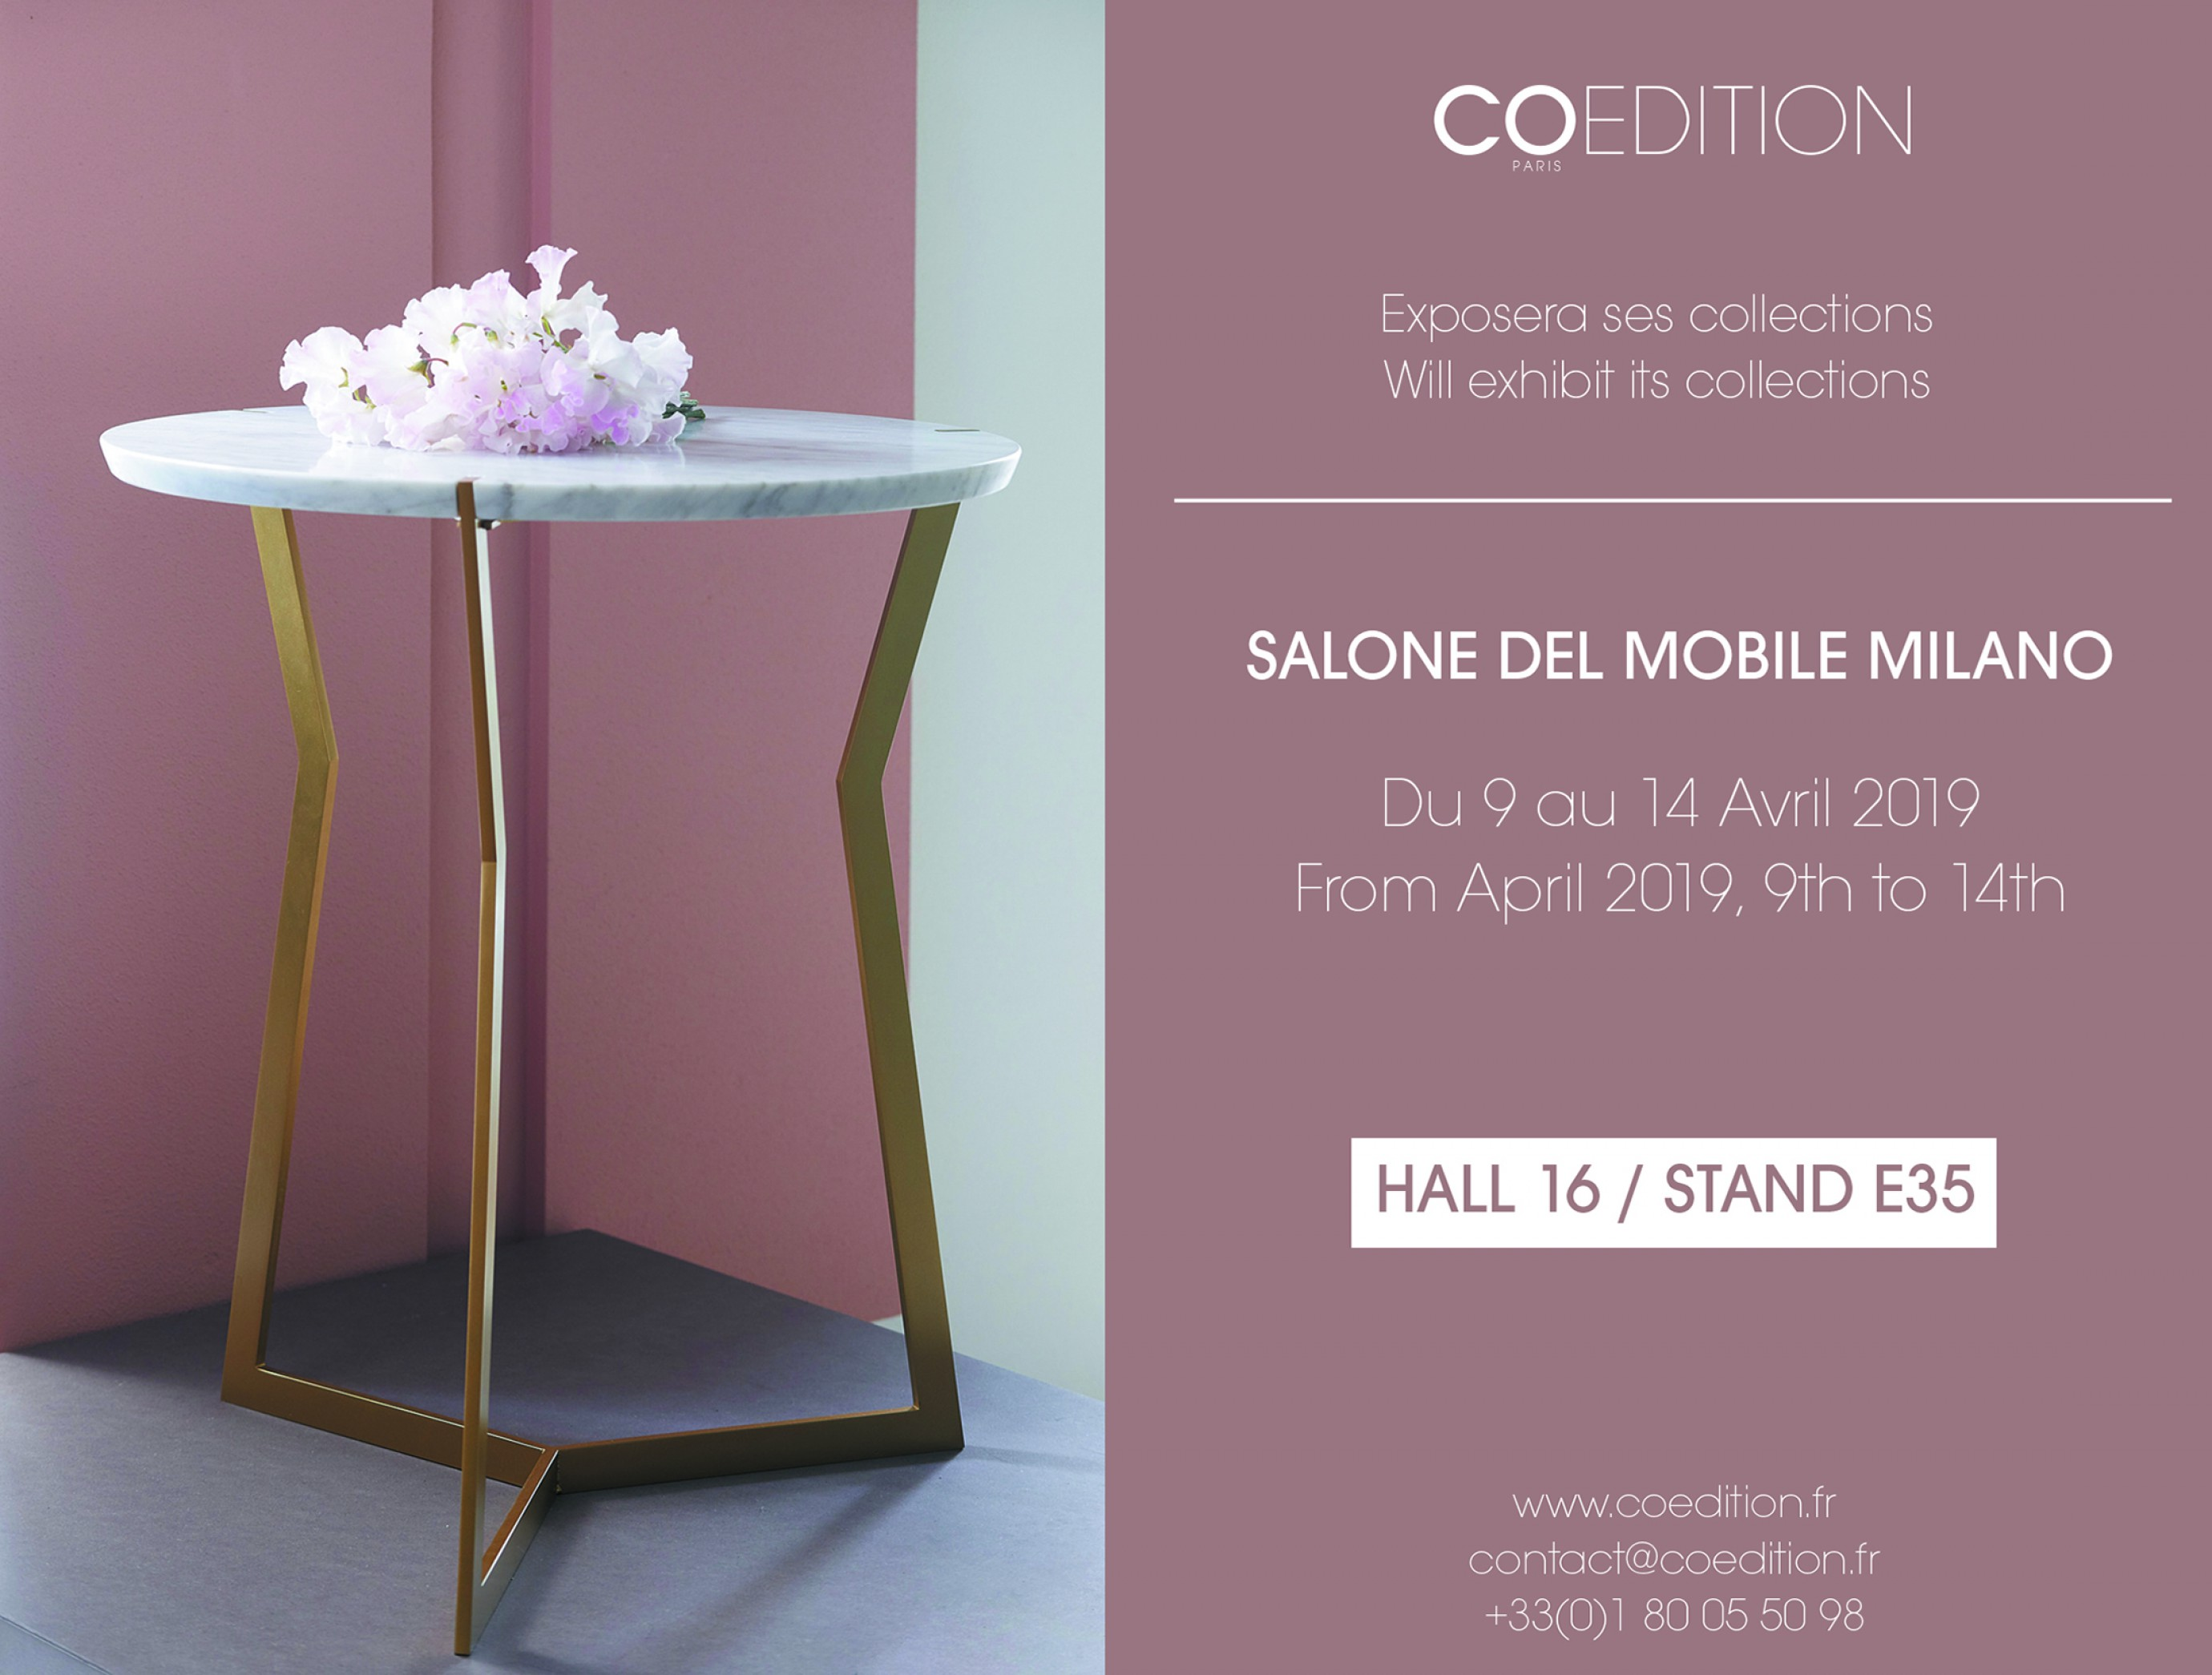 uitnodiging Milaan COedition: Hal 16 - Stand E35 Victors Design Agency